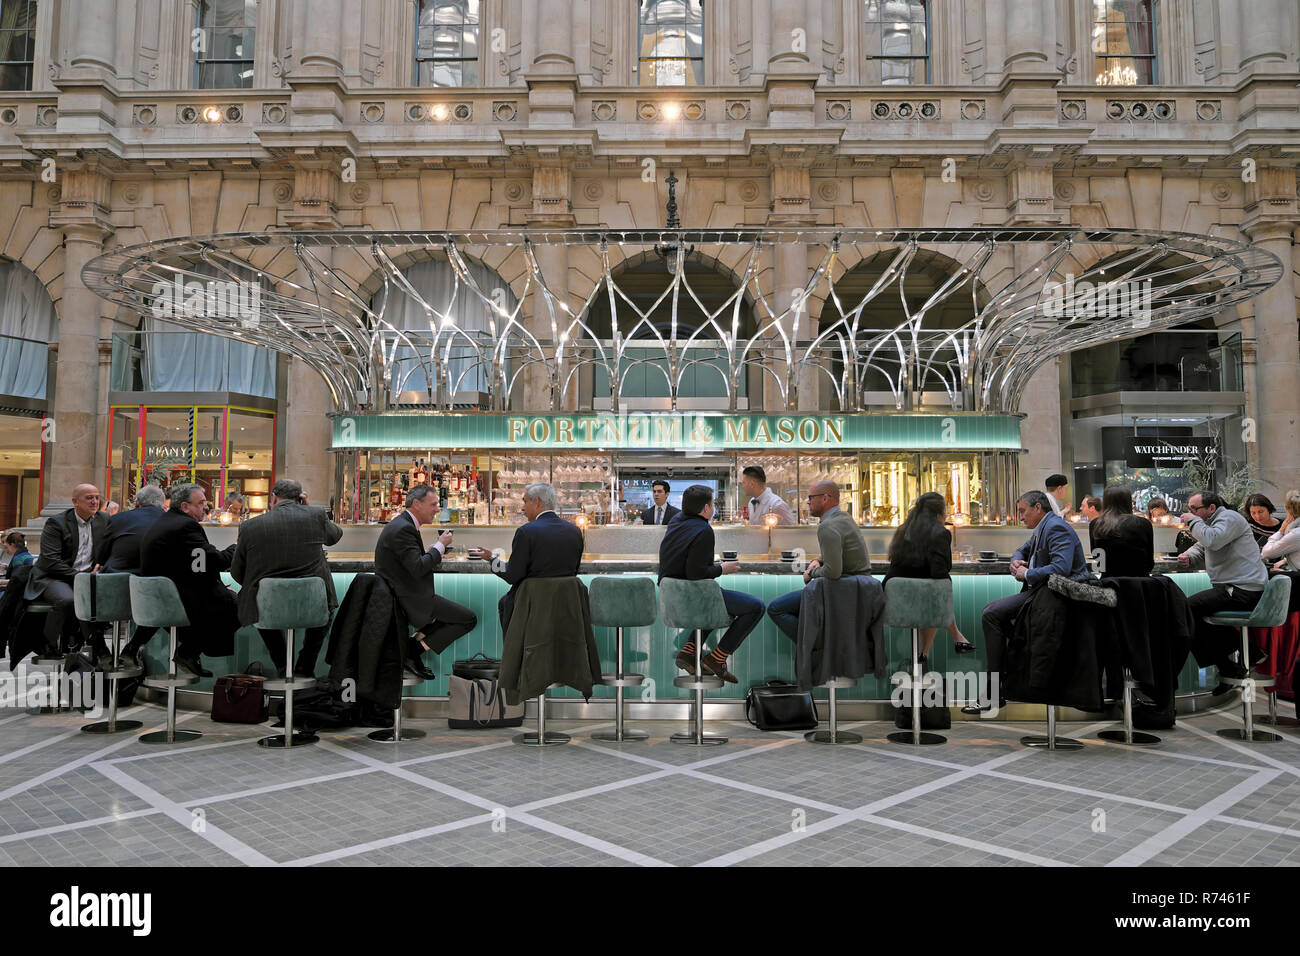 Fortnum & Mason Christmas tree outside the Royal Exchange and Bank of England with a street view of Mansion House City of London UK  KATHY DEWITT Stock Photo